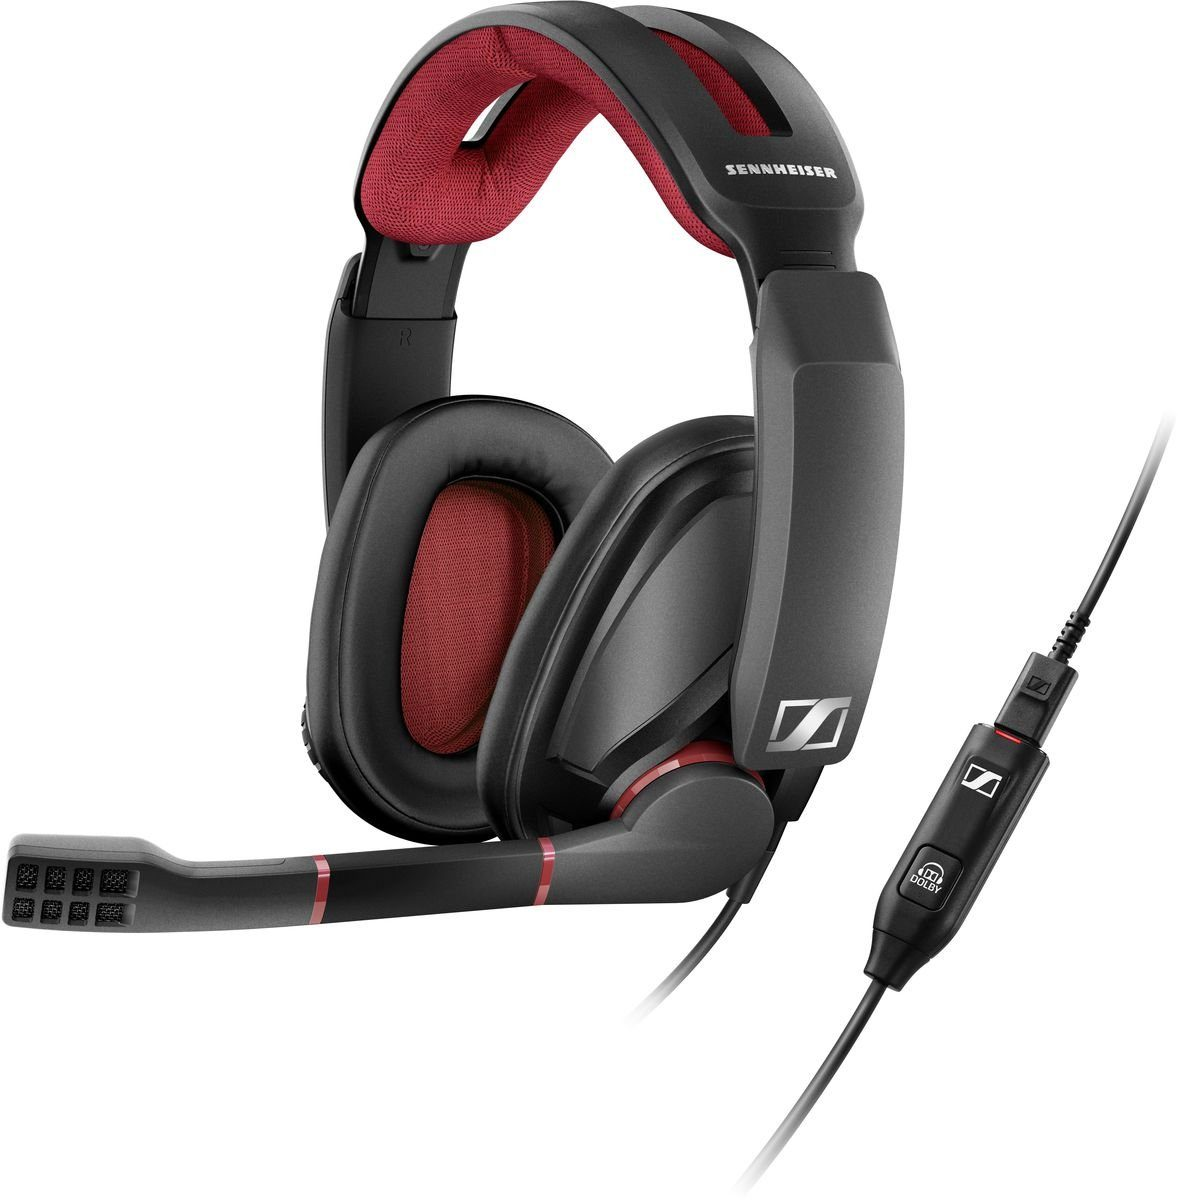 Sennheiser Gaming-Headset »GSP 350 - für PC-Gaming mit Surround-Sound«